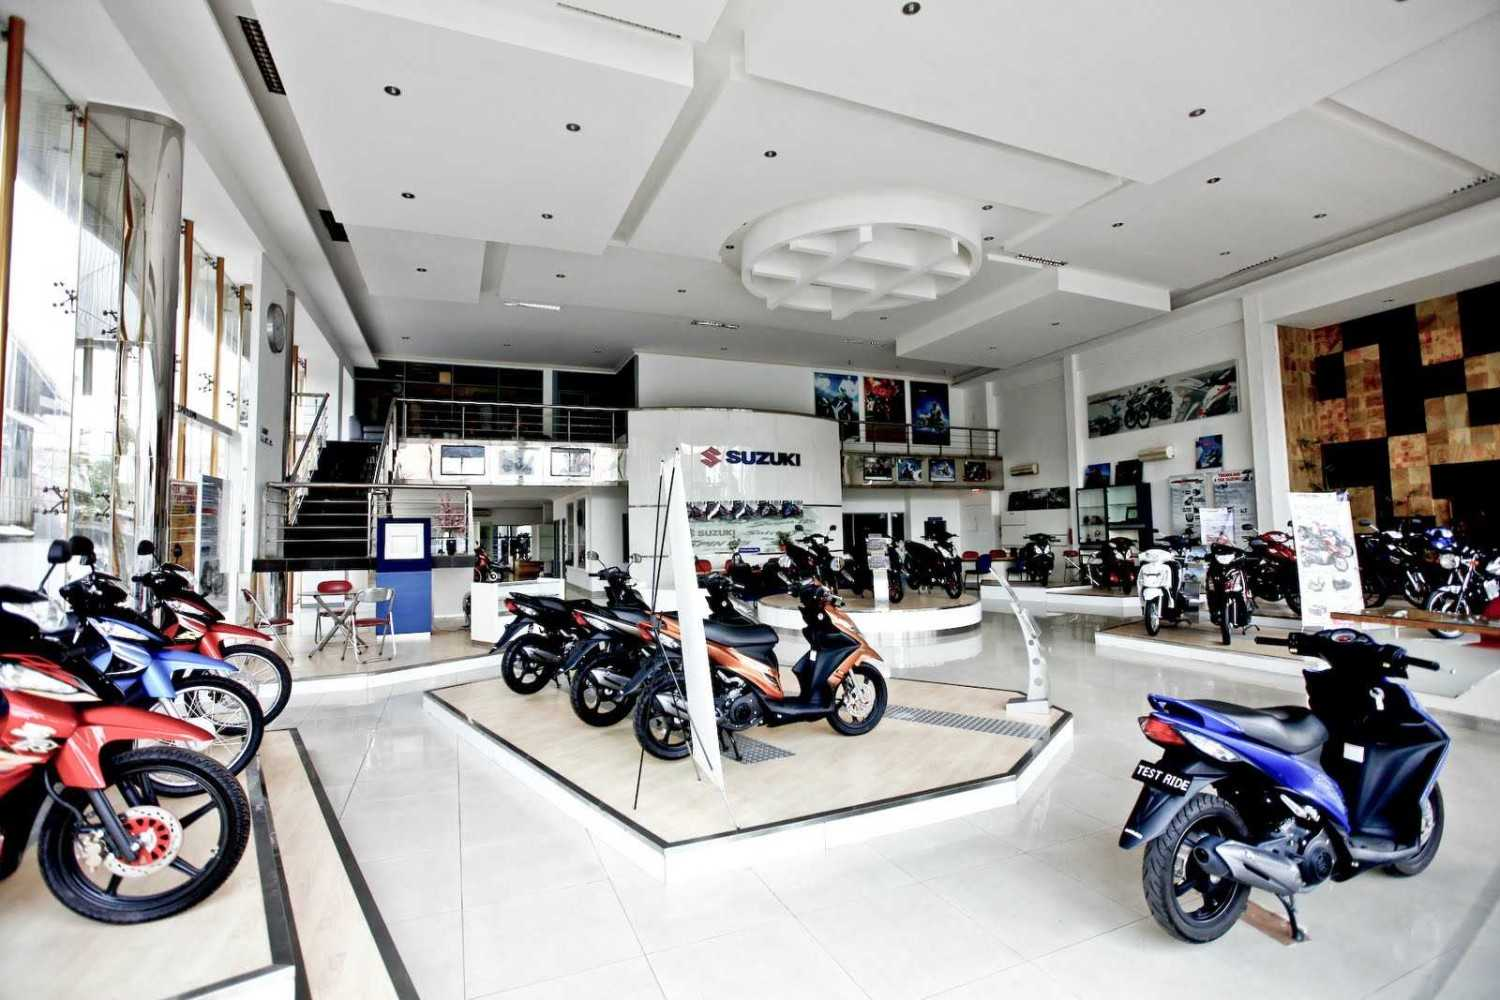 Foto inspirasi ide desain display area modern Interior showroom oleh Jerry M. Febrino di Arsitag